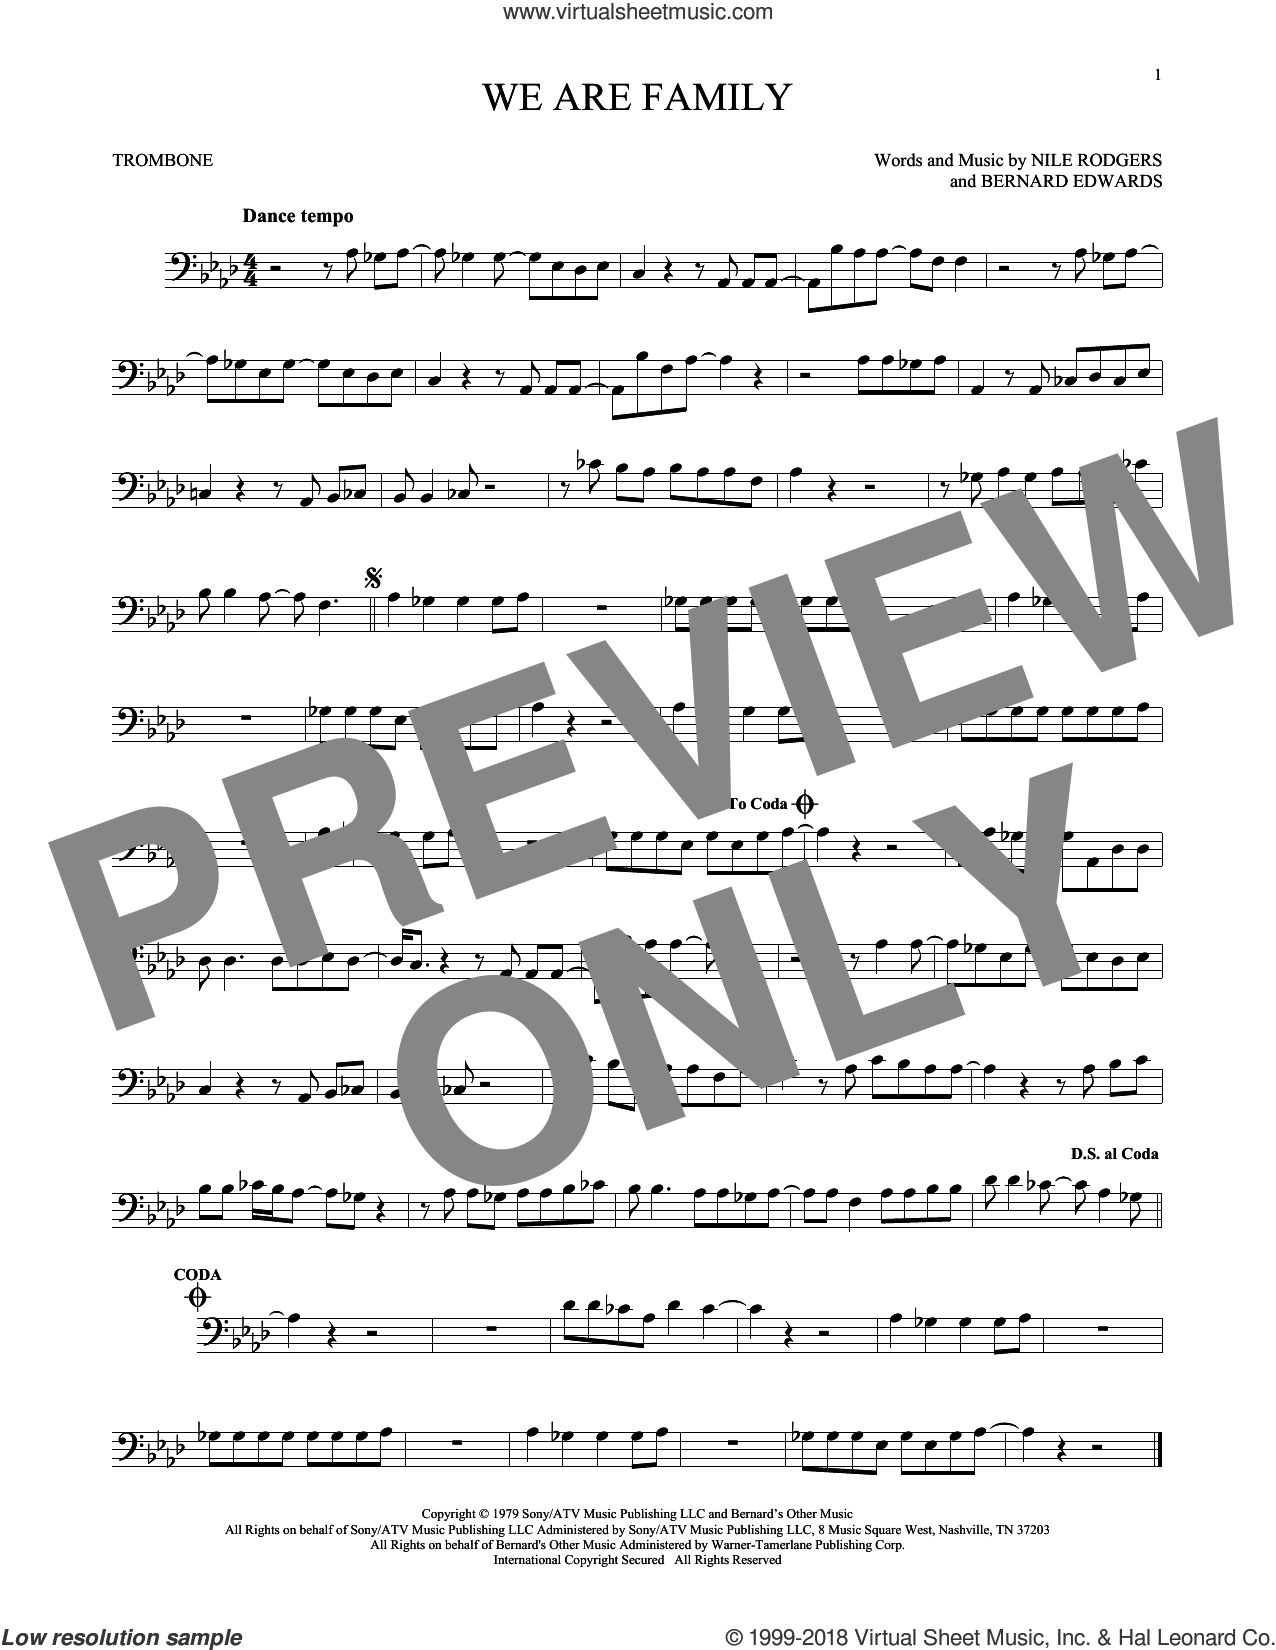 We Are Family sheet music for trombone solo by Nile Rodgers, Sister Sledge and Bernard Edwards. Score Image Preview.